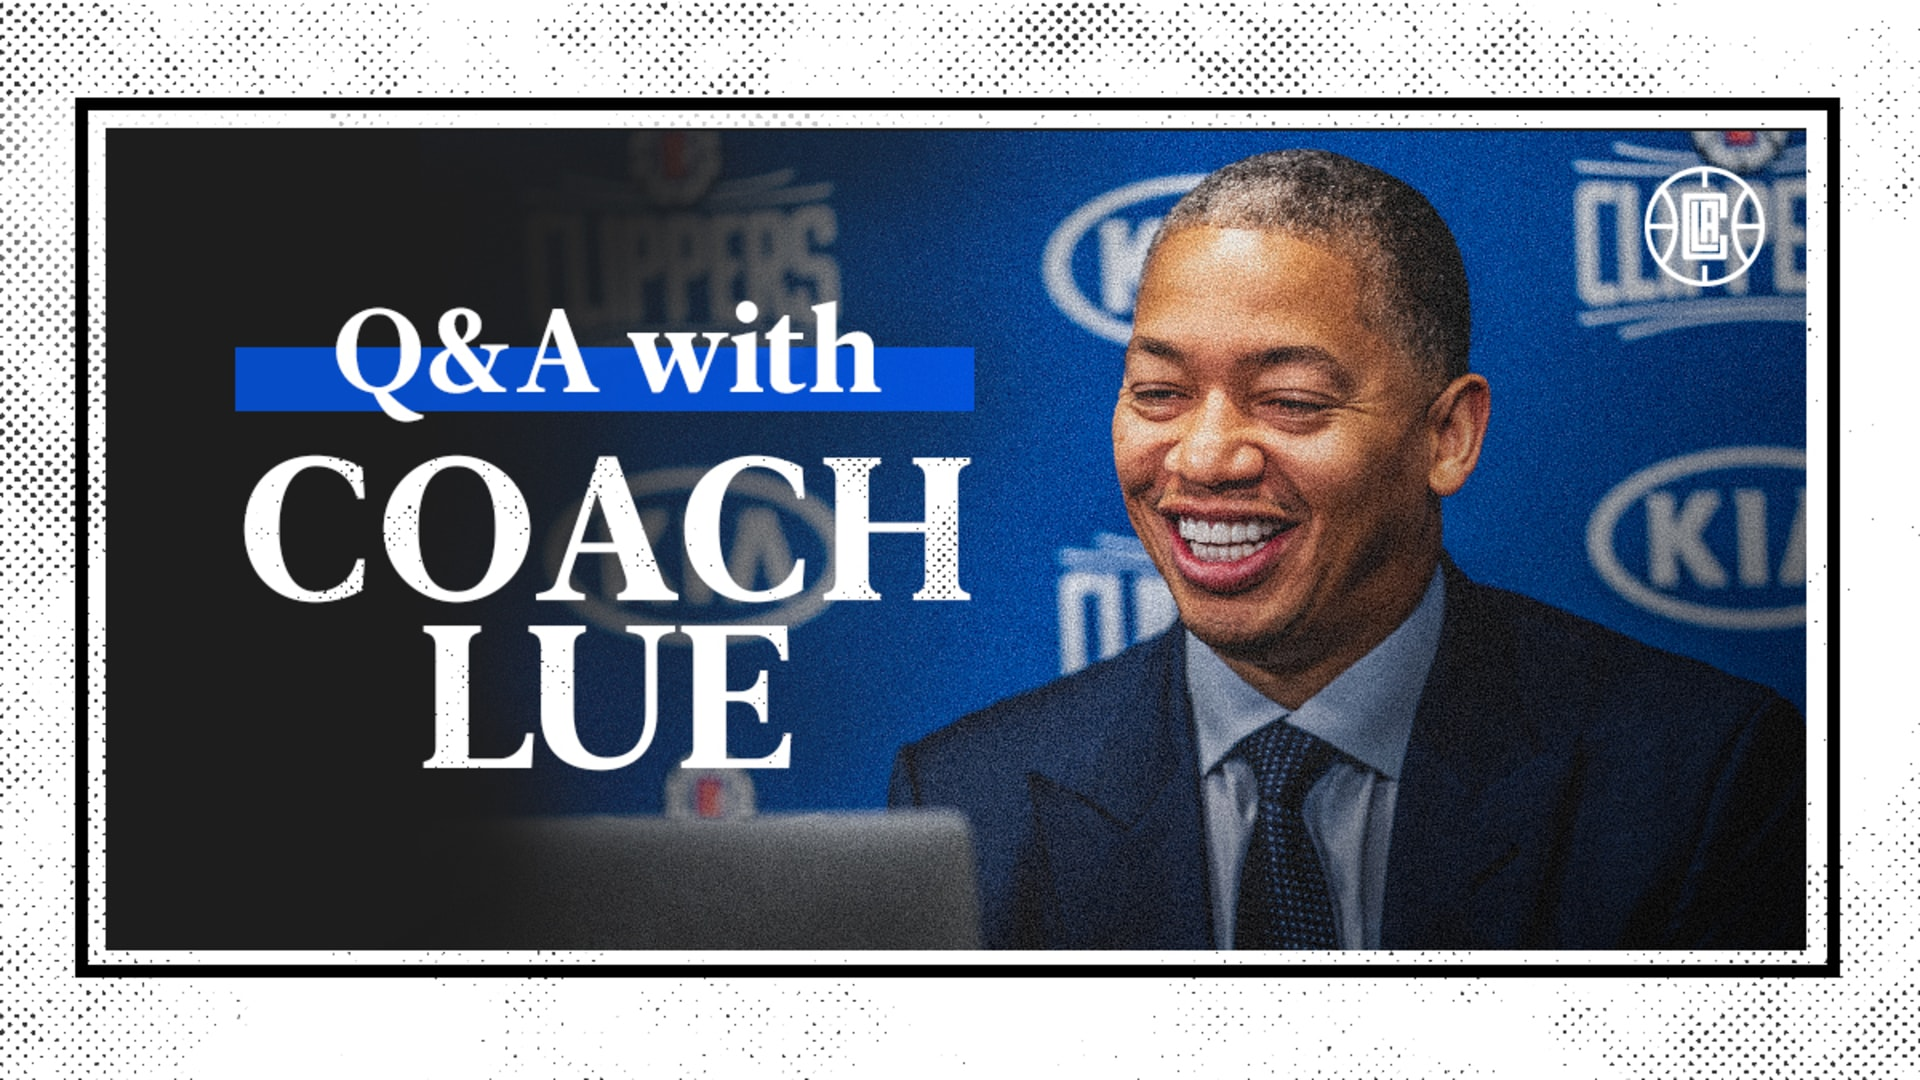 Q&A With Coach Lue